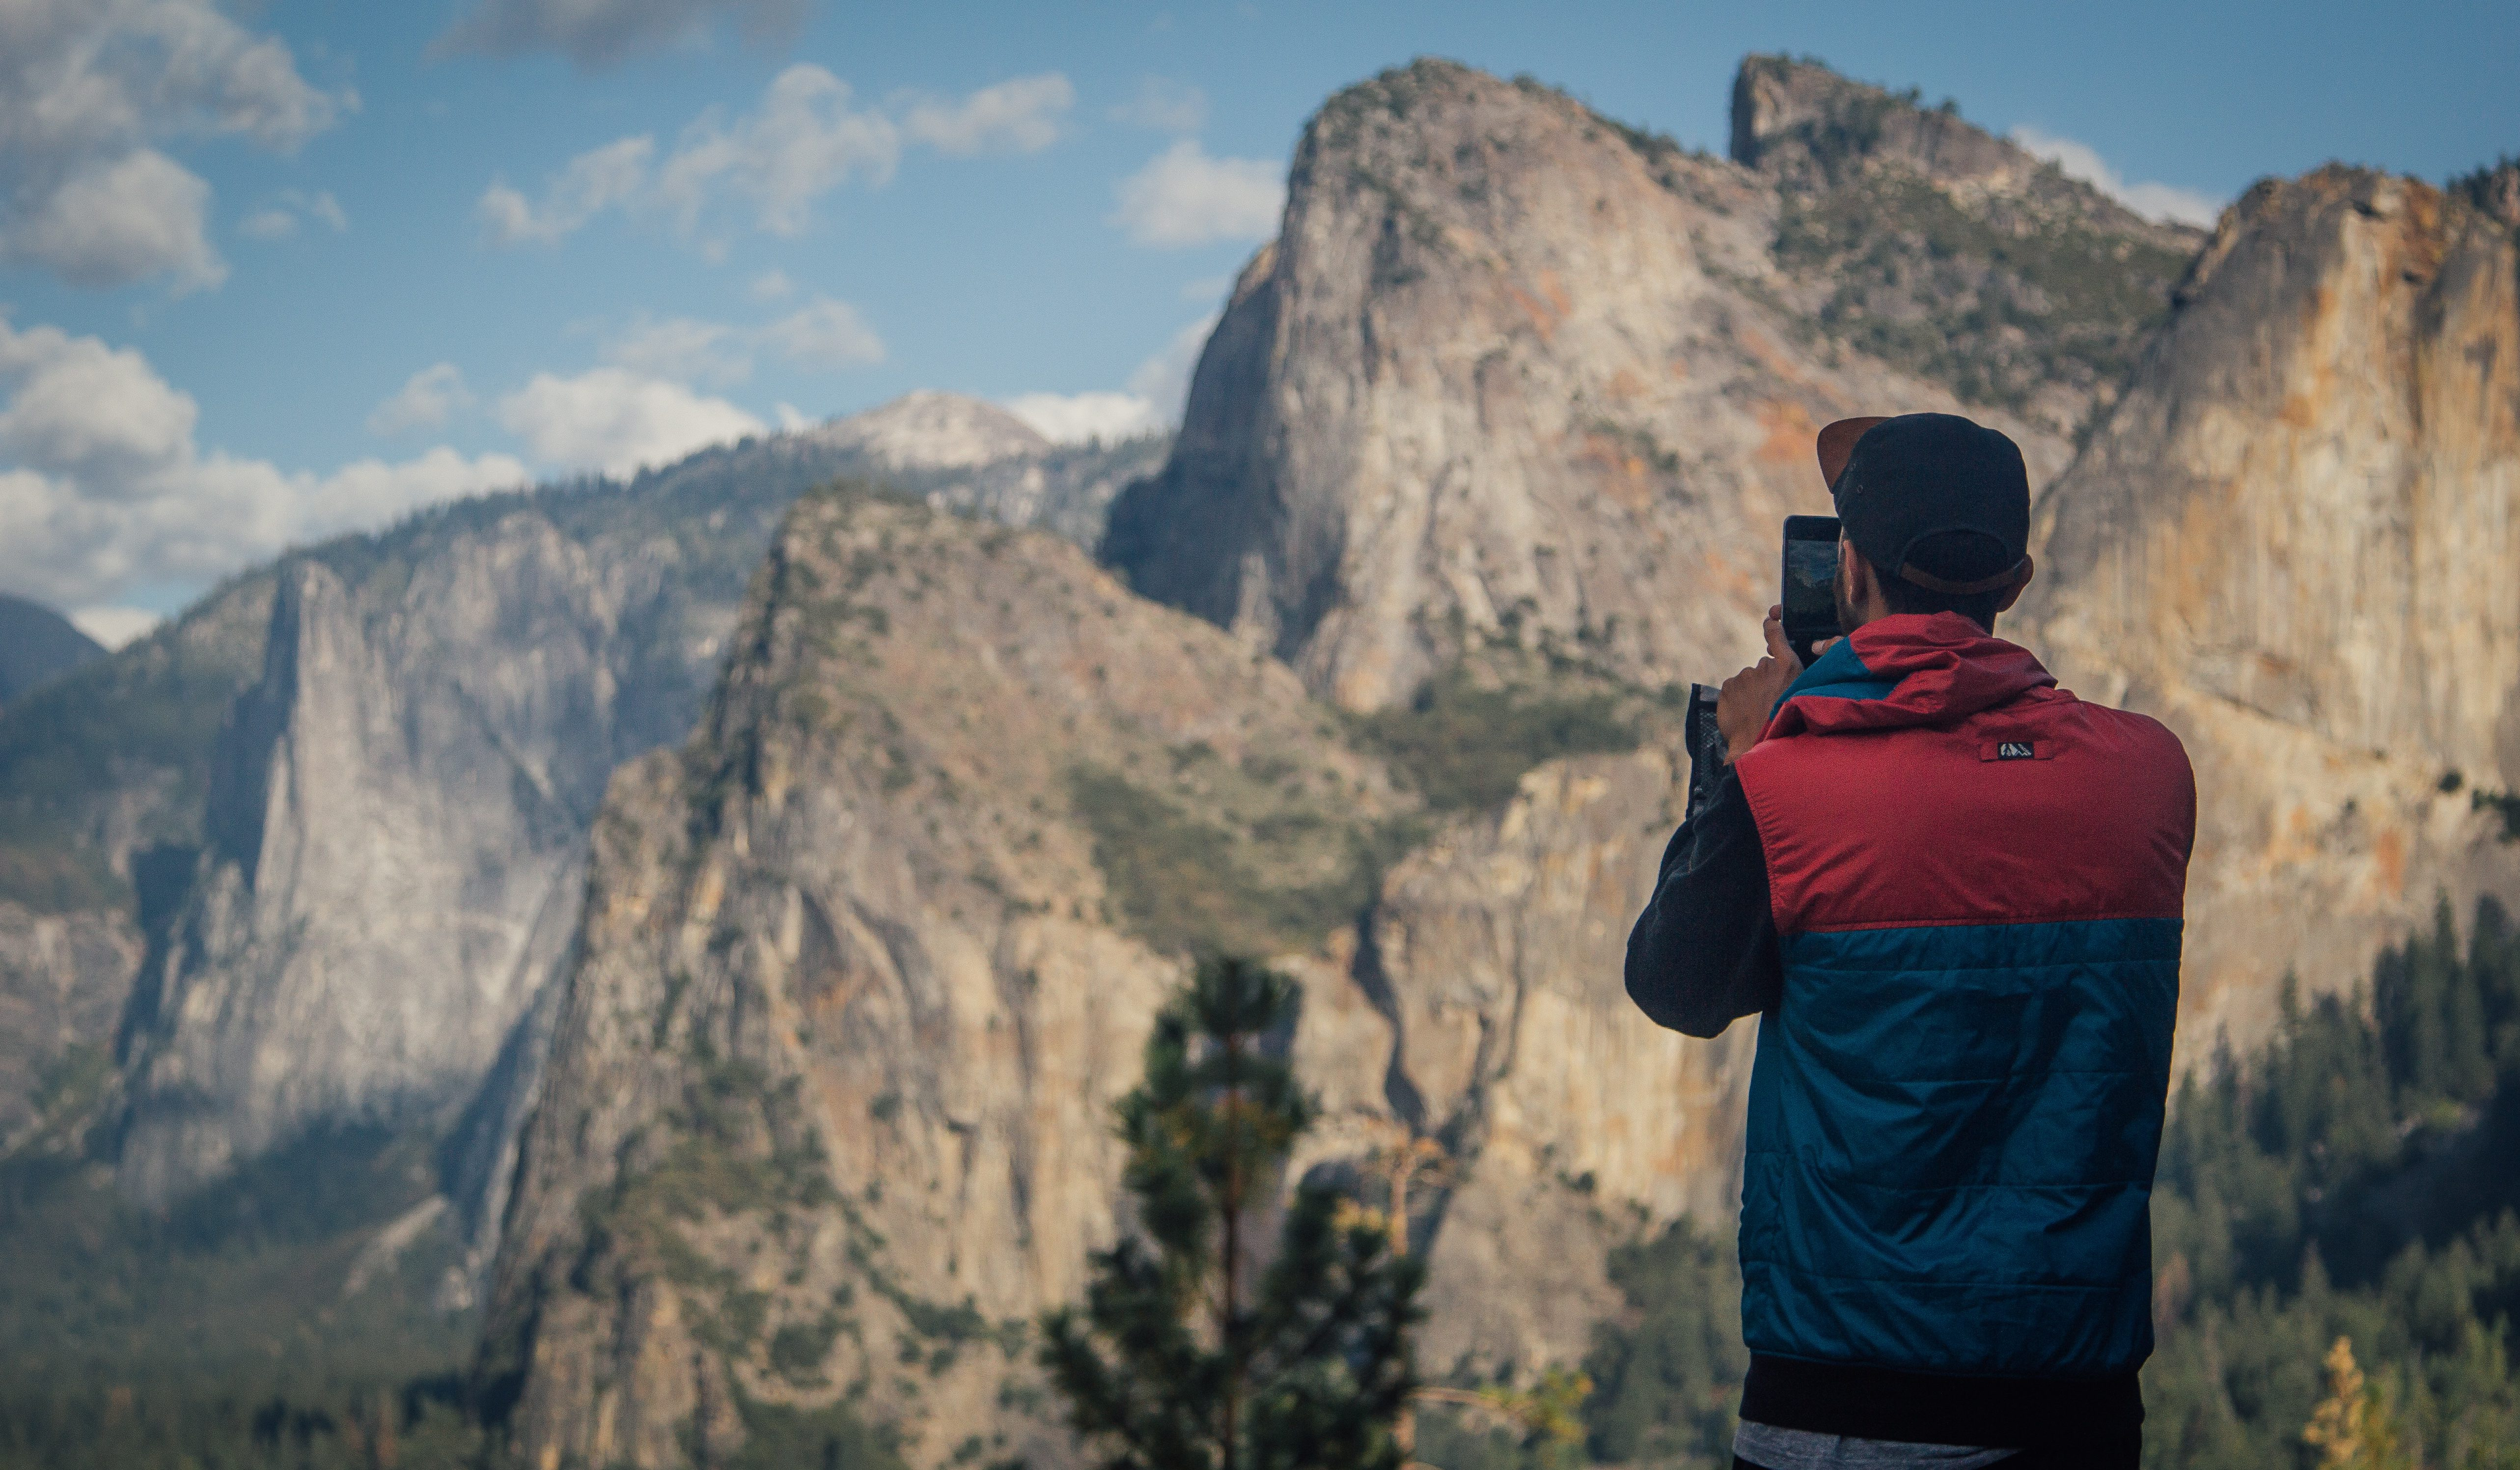 A man in a vest and baseball cap stands on the edge of a cliff taking a photo of the surrounding mountains with his iPhone.